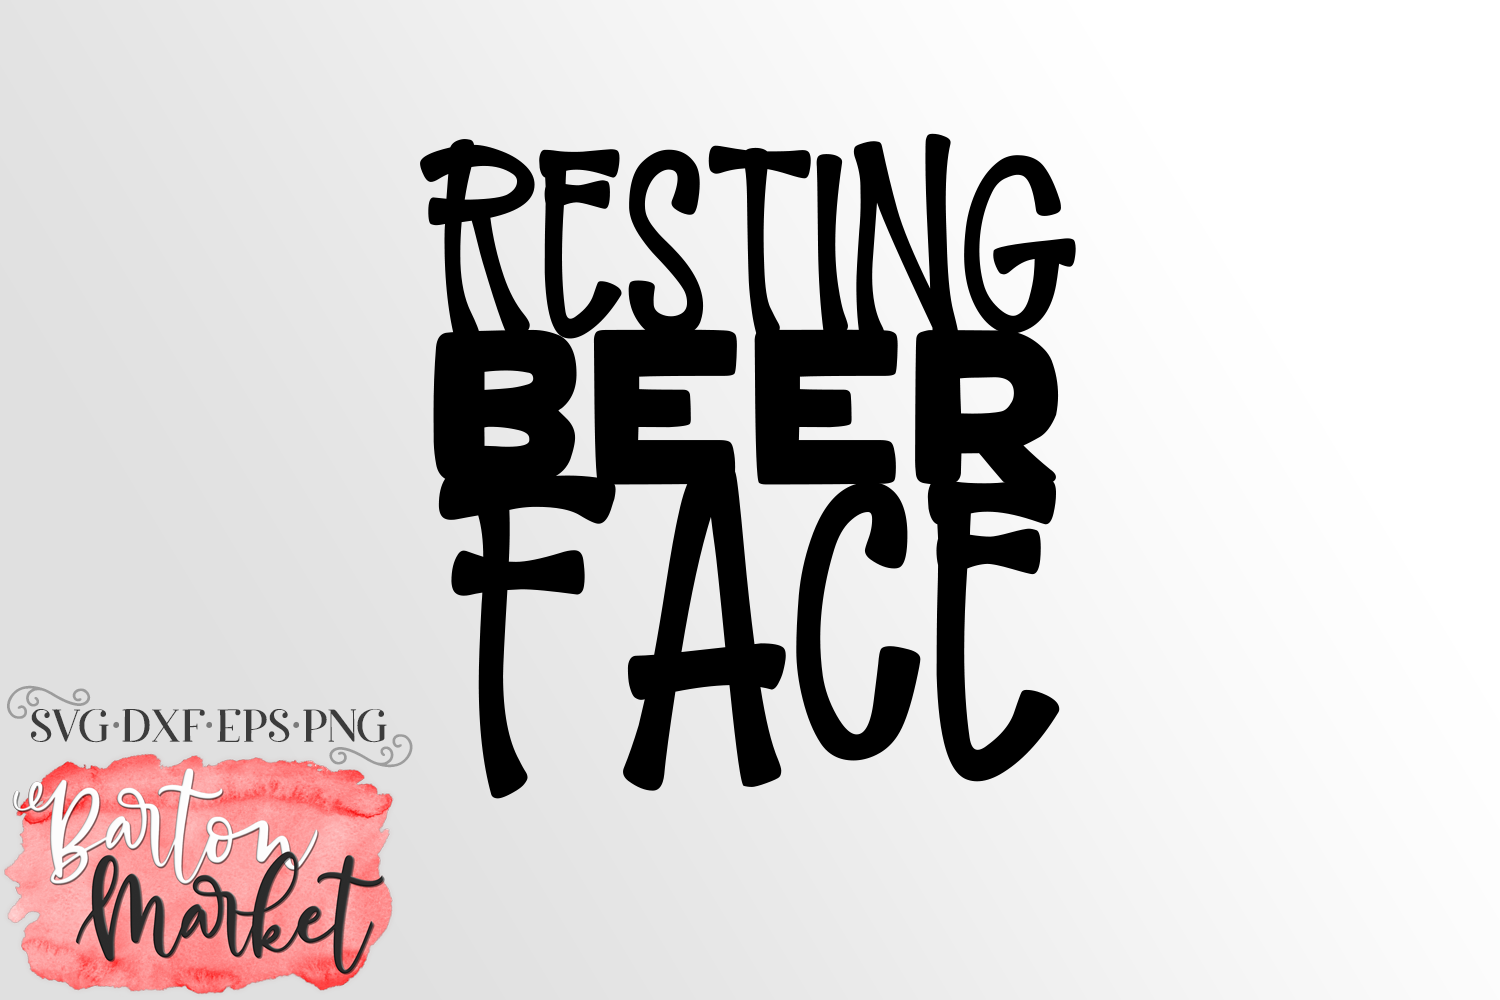 Resting Beer Face SVG DXF EPS PNG example image 3